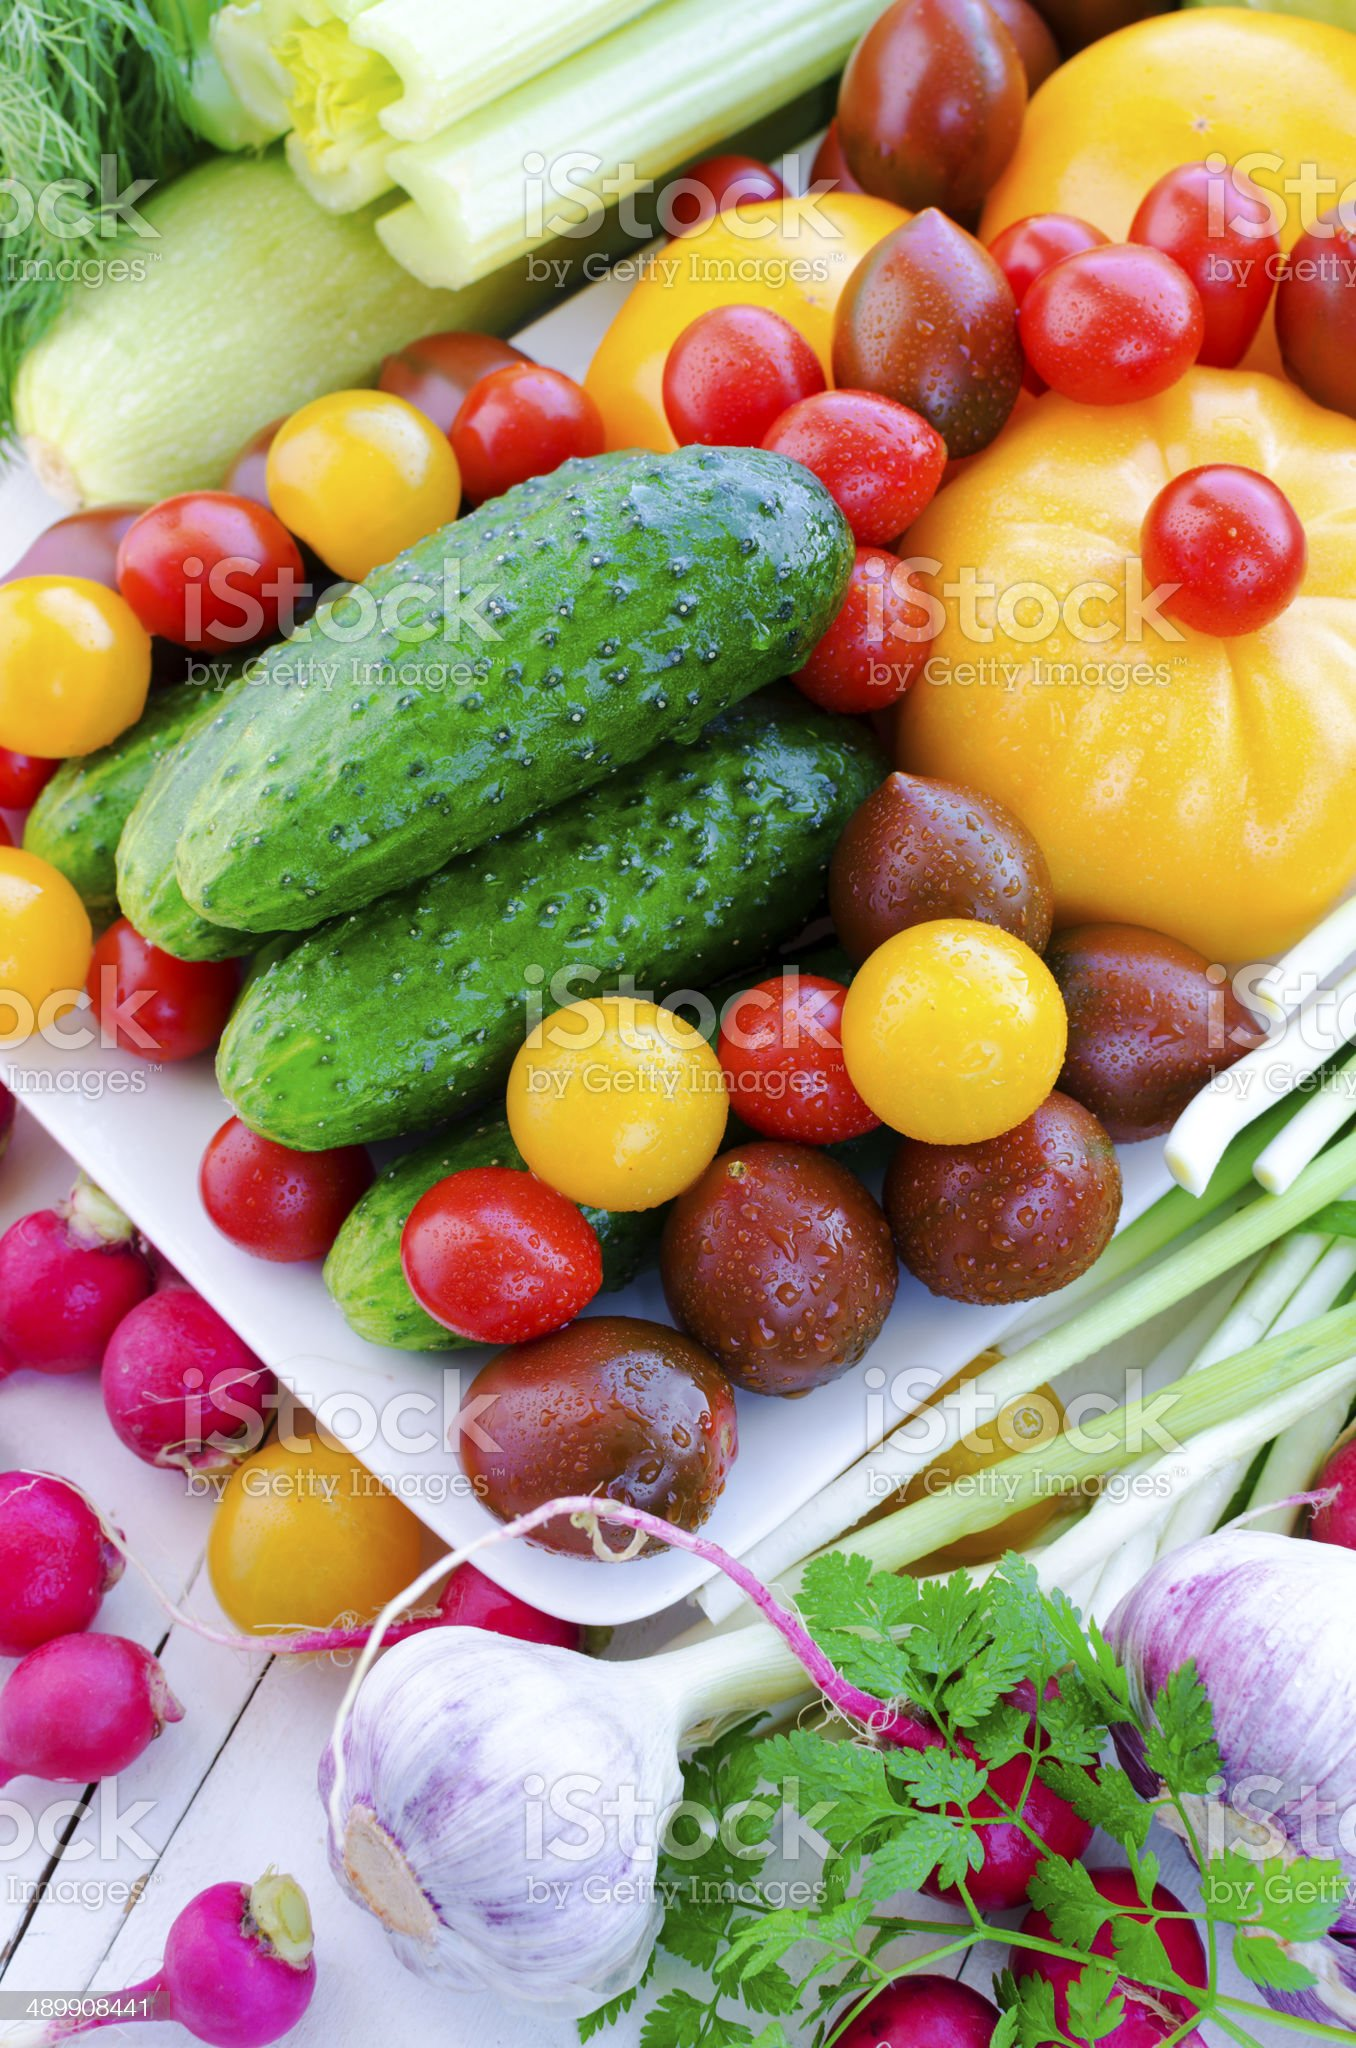 Spring vegetables royalty-free stock photo